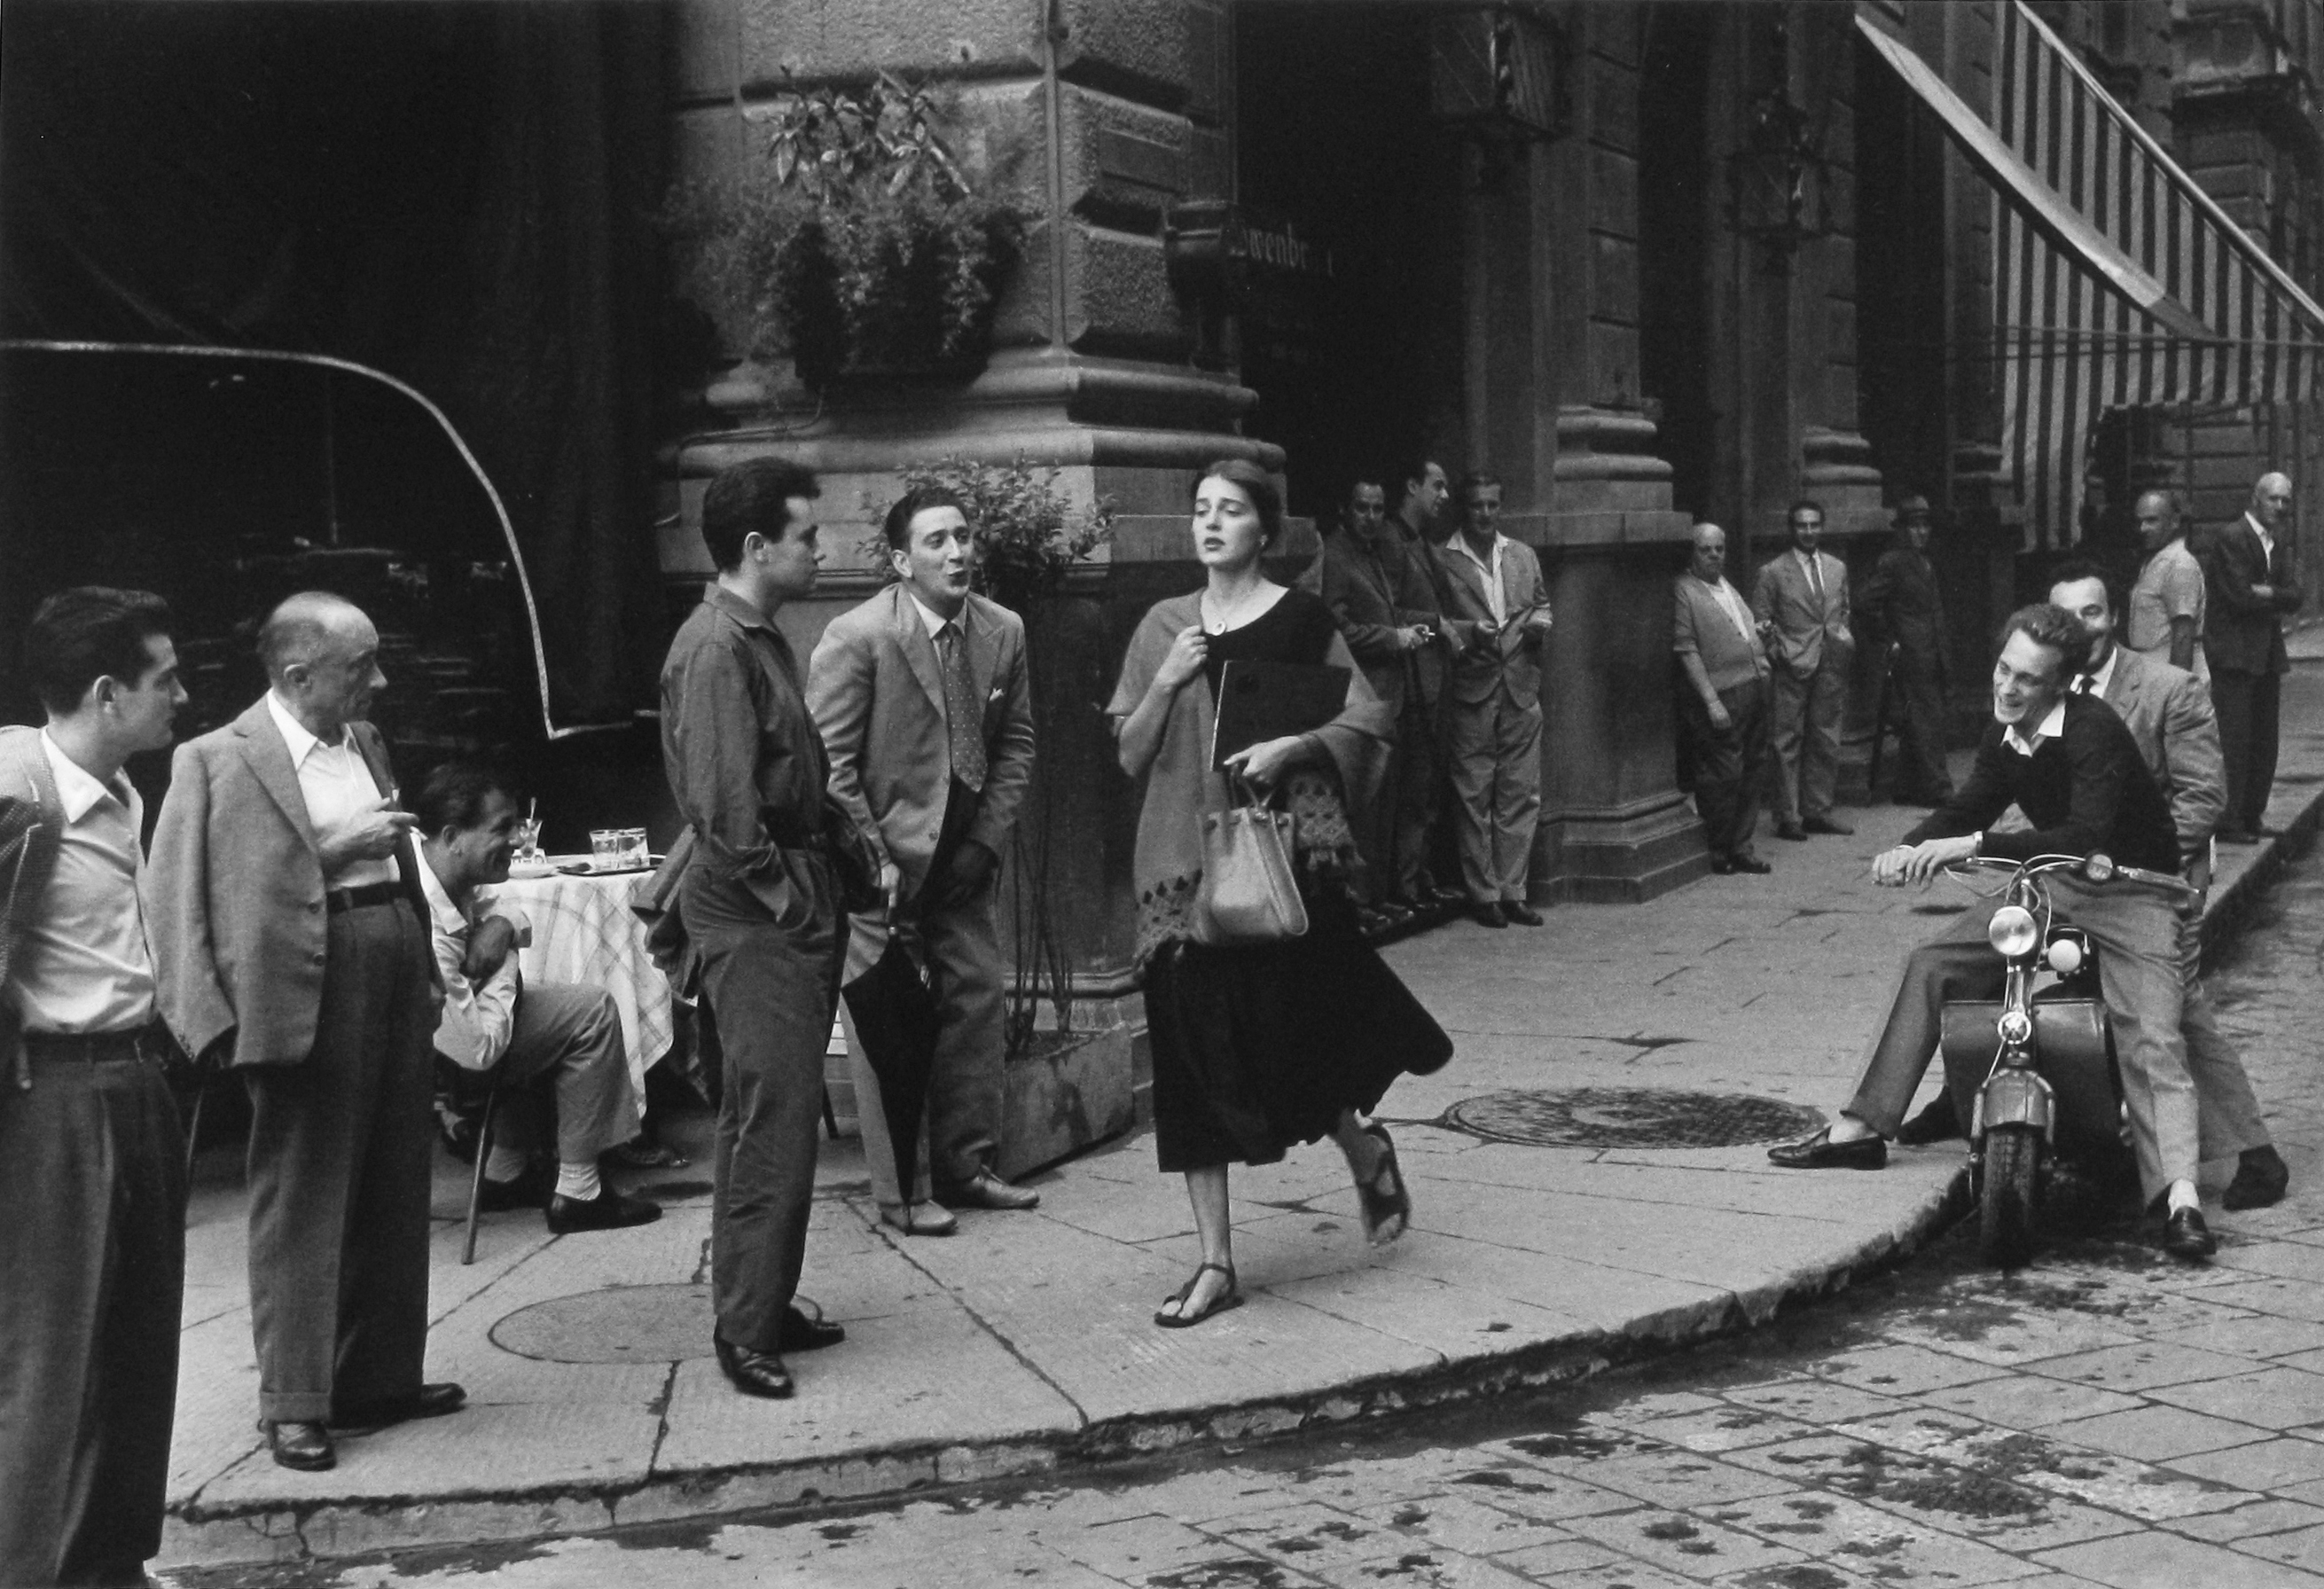 'American Girl' photo: American Girl in Italy, 1951 © 1952, 1980 Ruth Orkin / Courtesy of Stephen Bulger Gallery